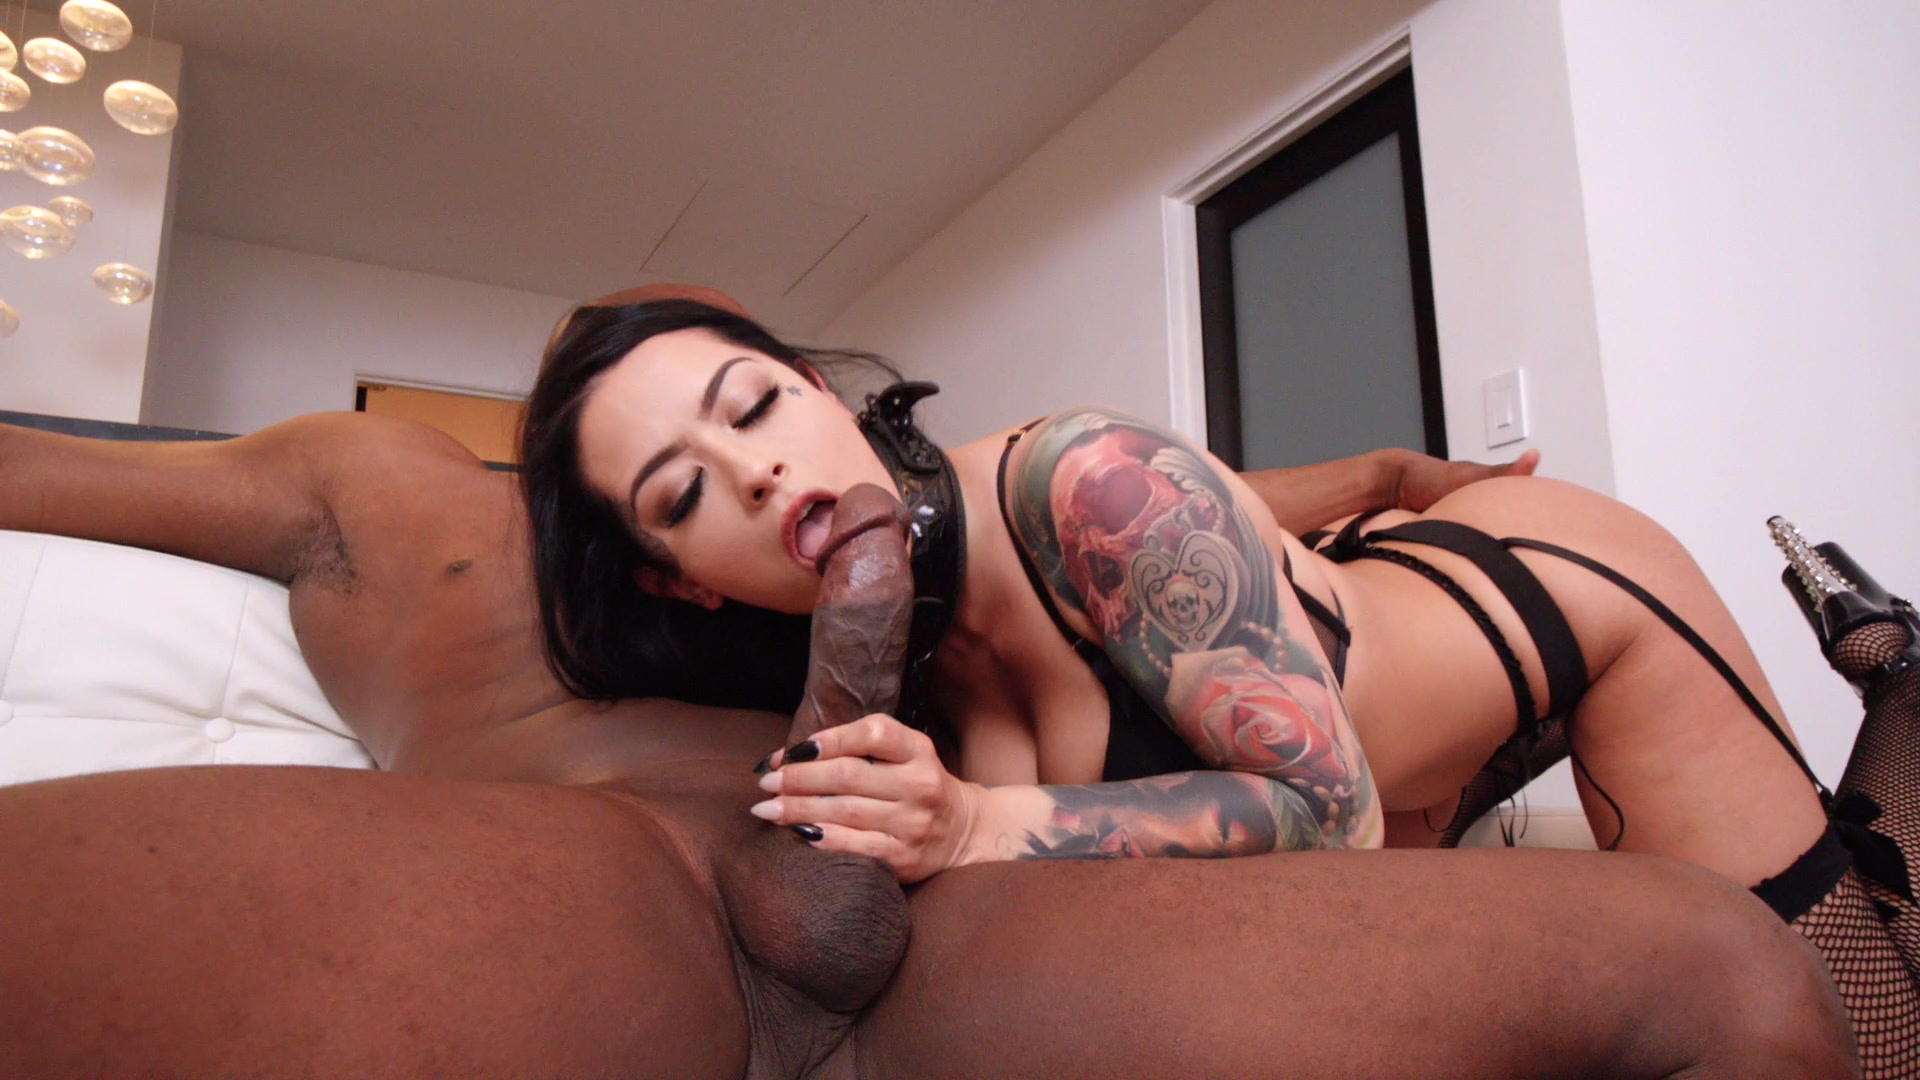 Scene with Katrina Jade - image 5 out of 20